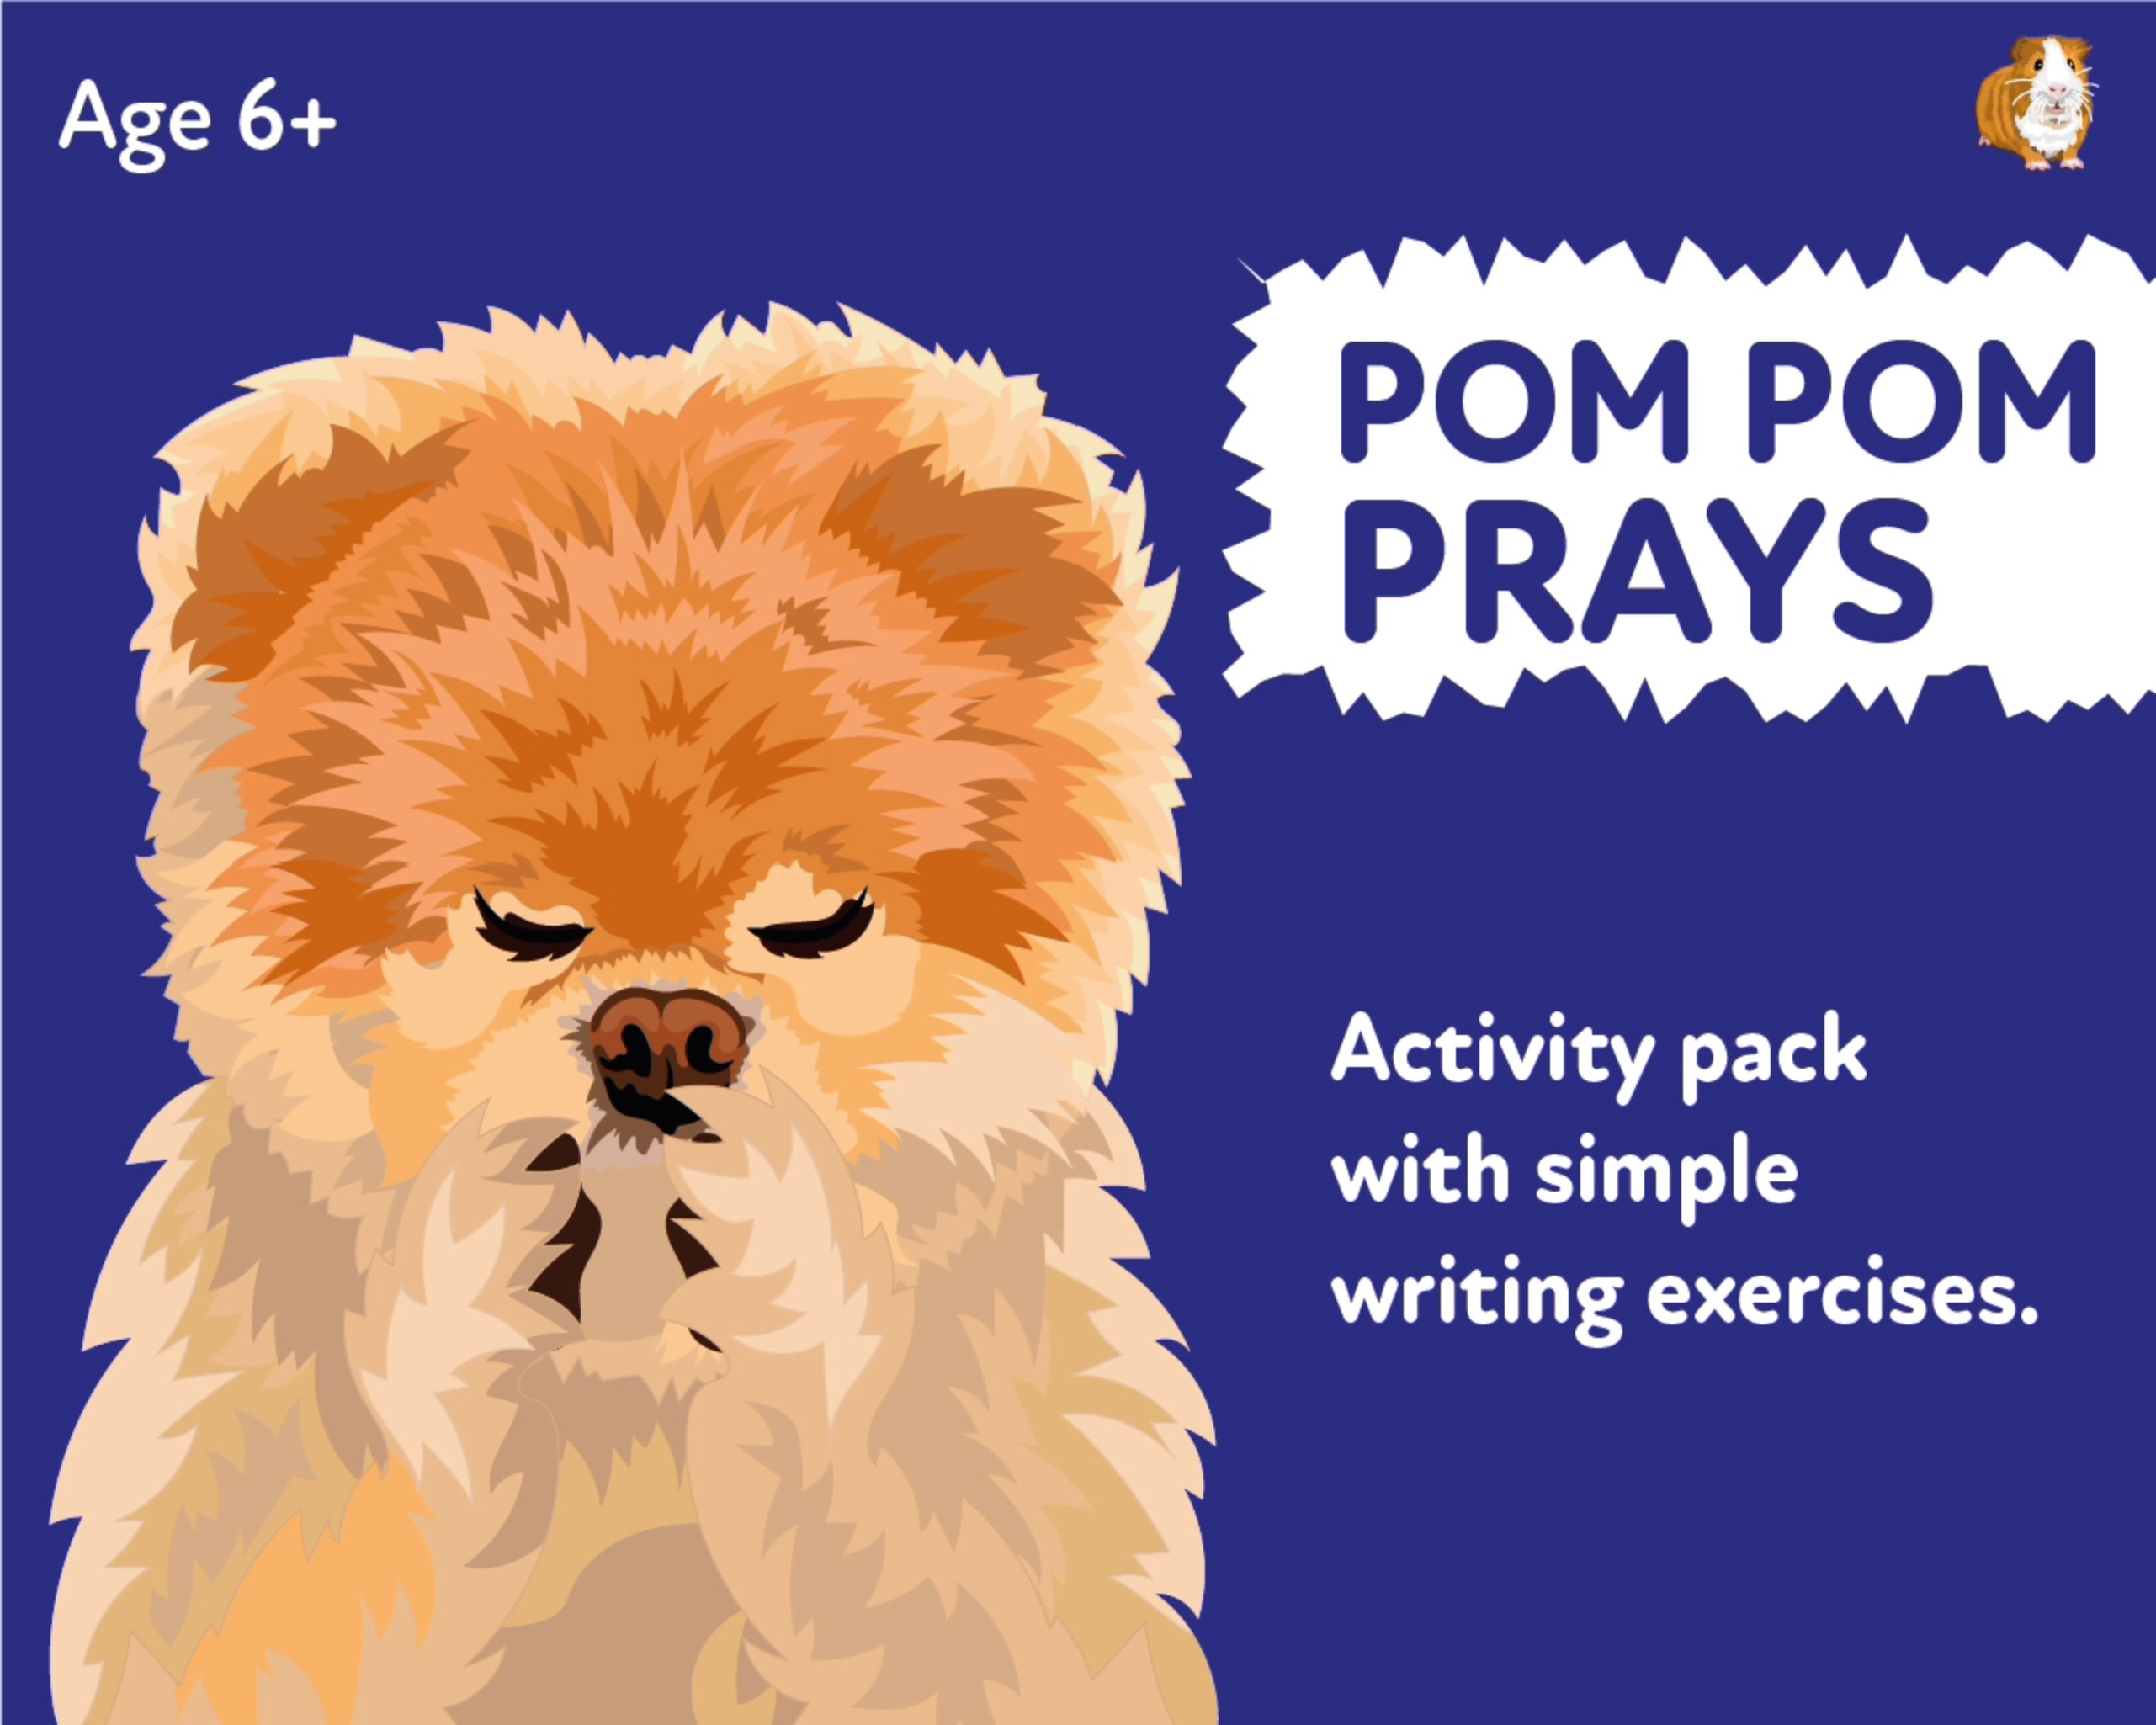 'Pom Pom Prays' A Fun Writing And Drawing Activity (6 years +)